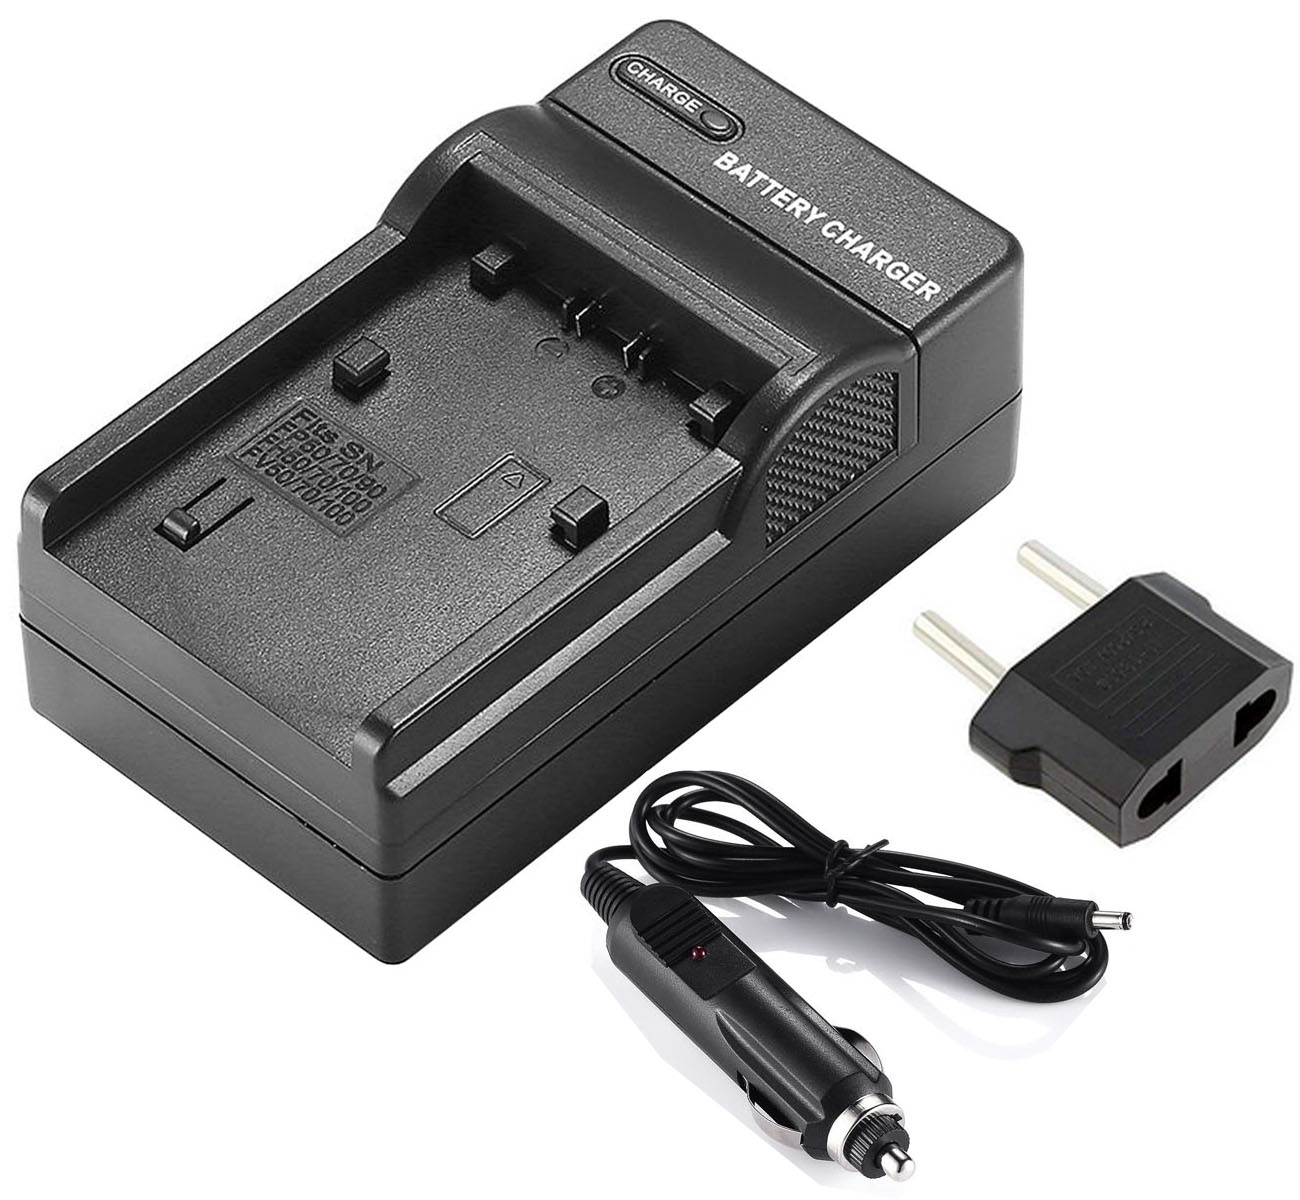 DCR-SR36E LCD Quick Battery Charger for Sony DCR-SR32E DCR-SR35E DCR-SR37E DCR-SR33E DCR-SR38E Handycam Camcorder